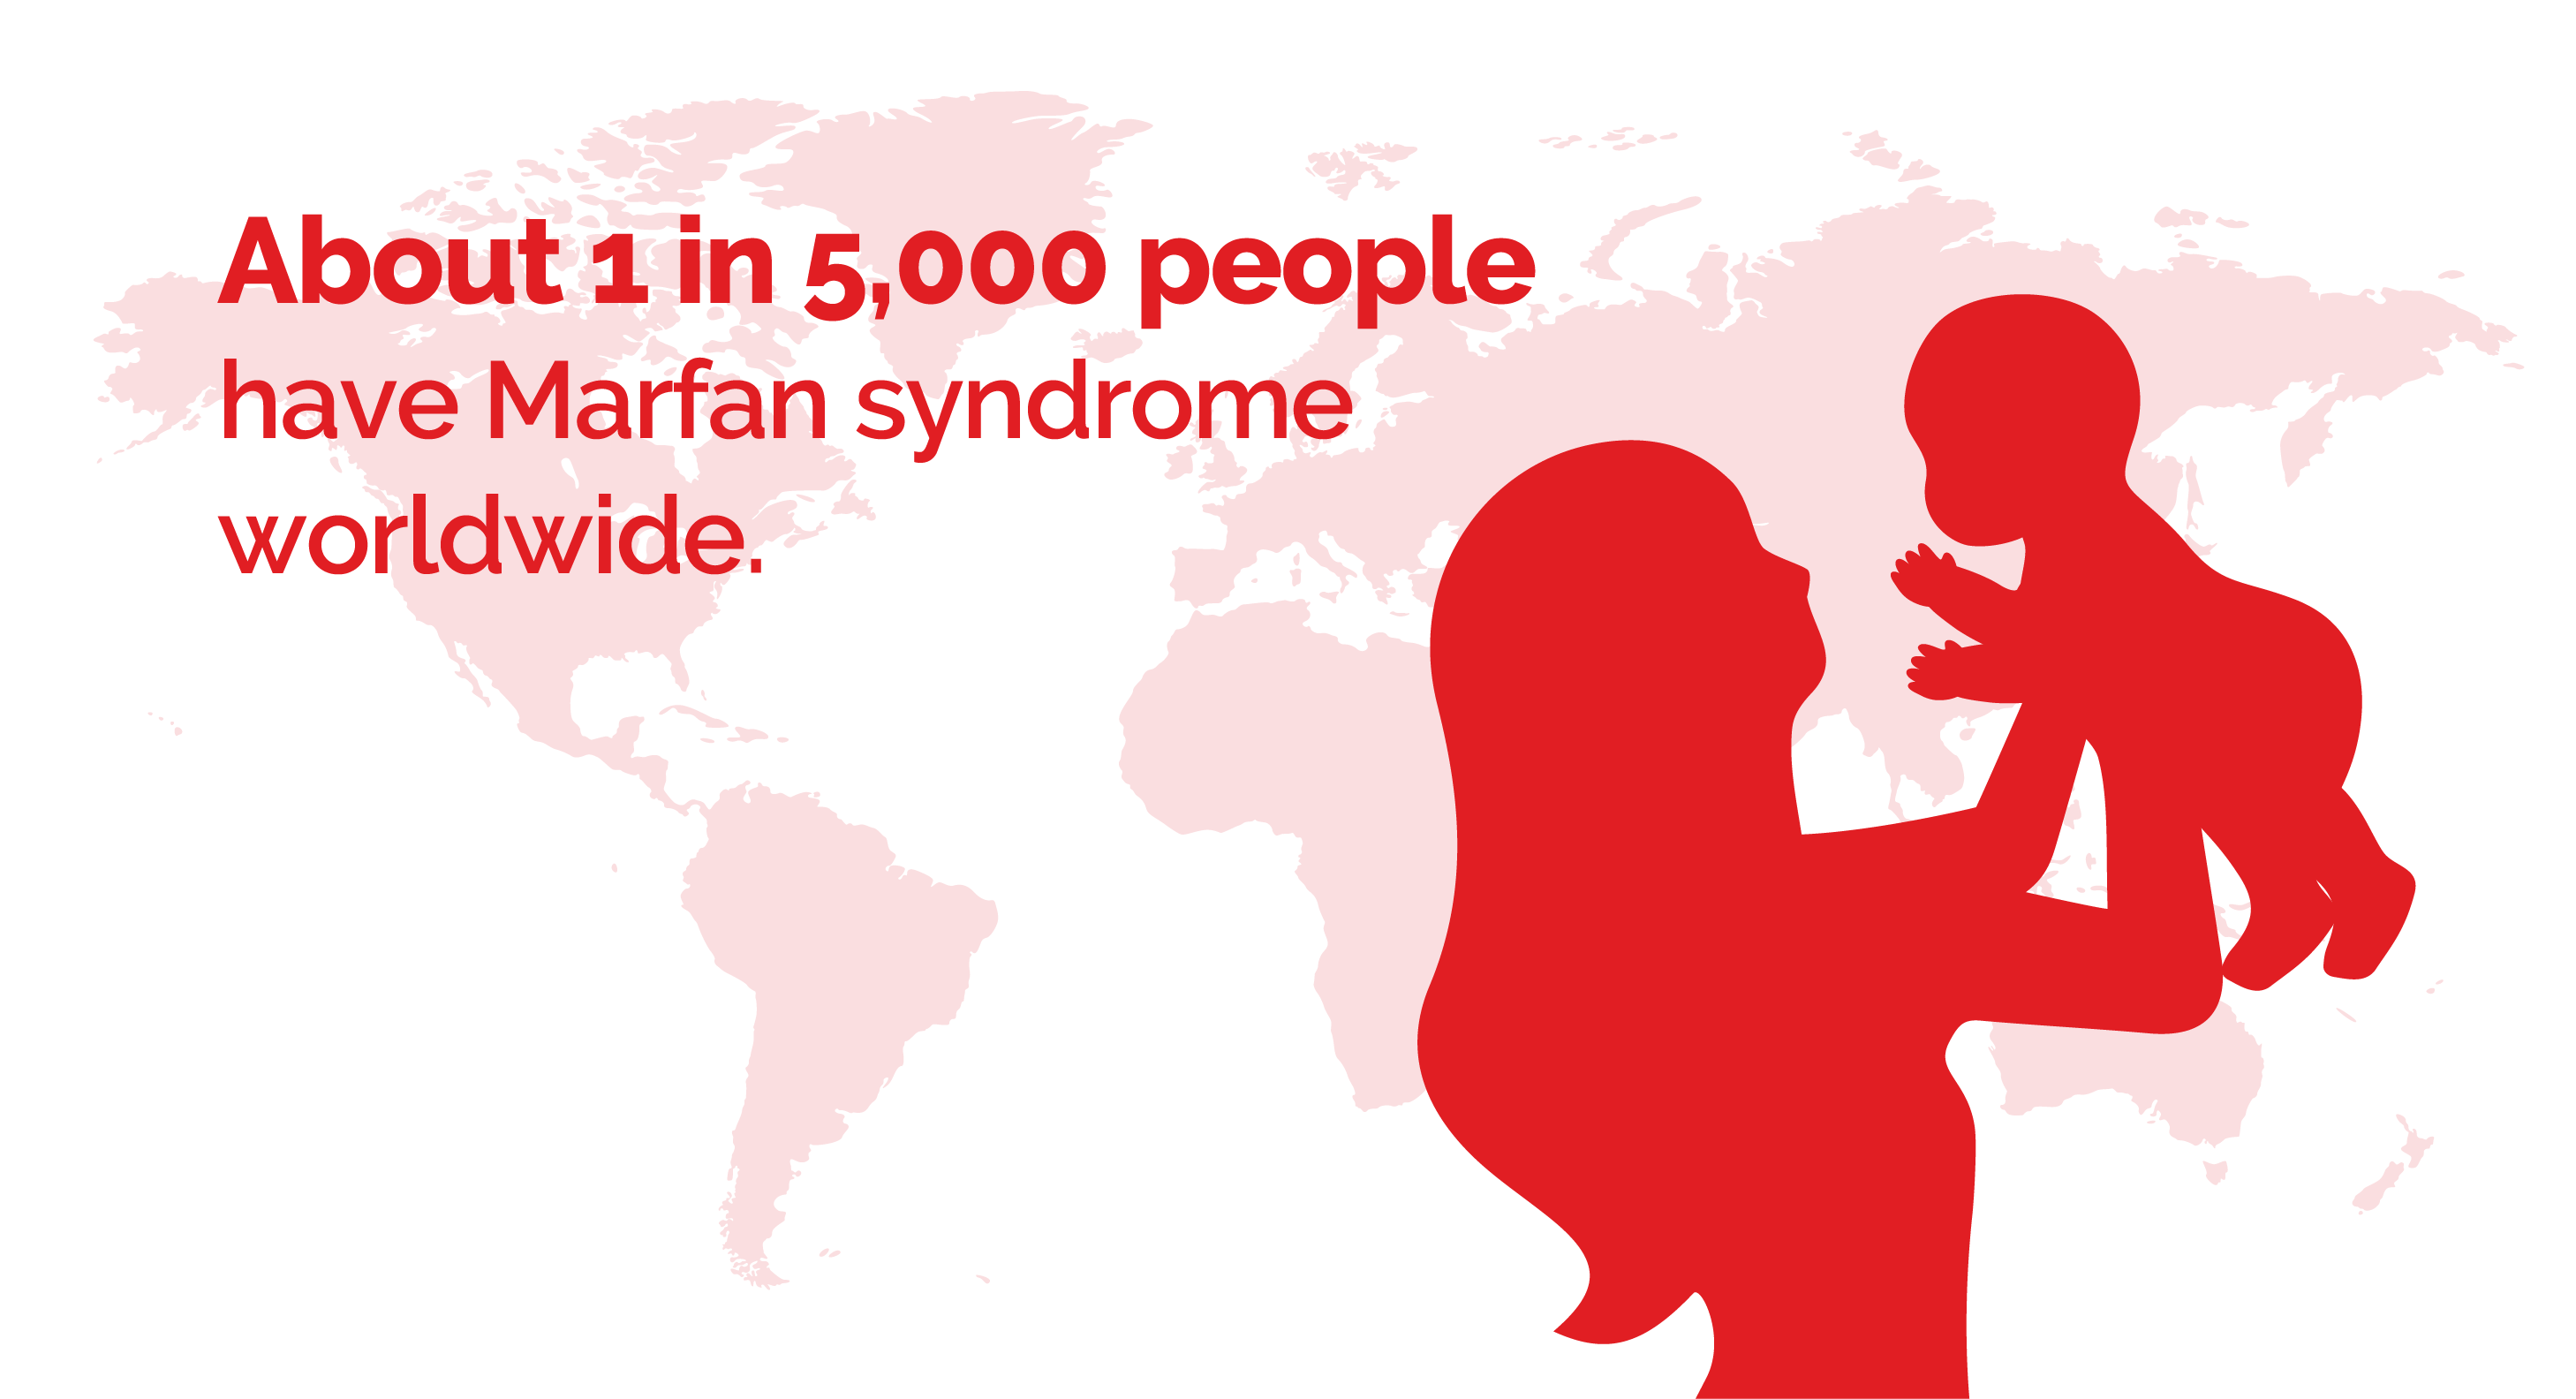 Marfan syndrome affects about 1 in 5,000 people globally.